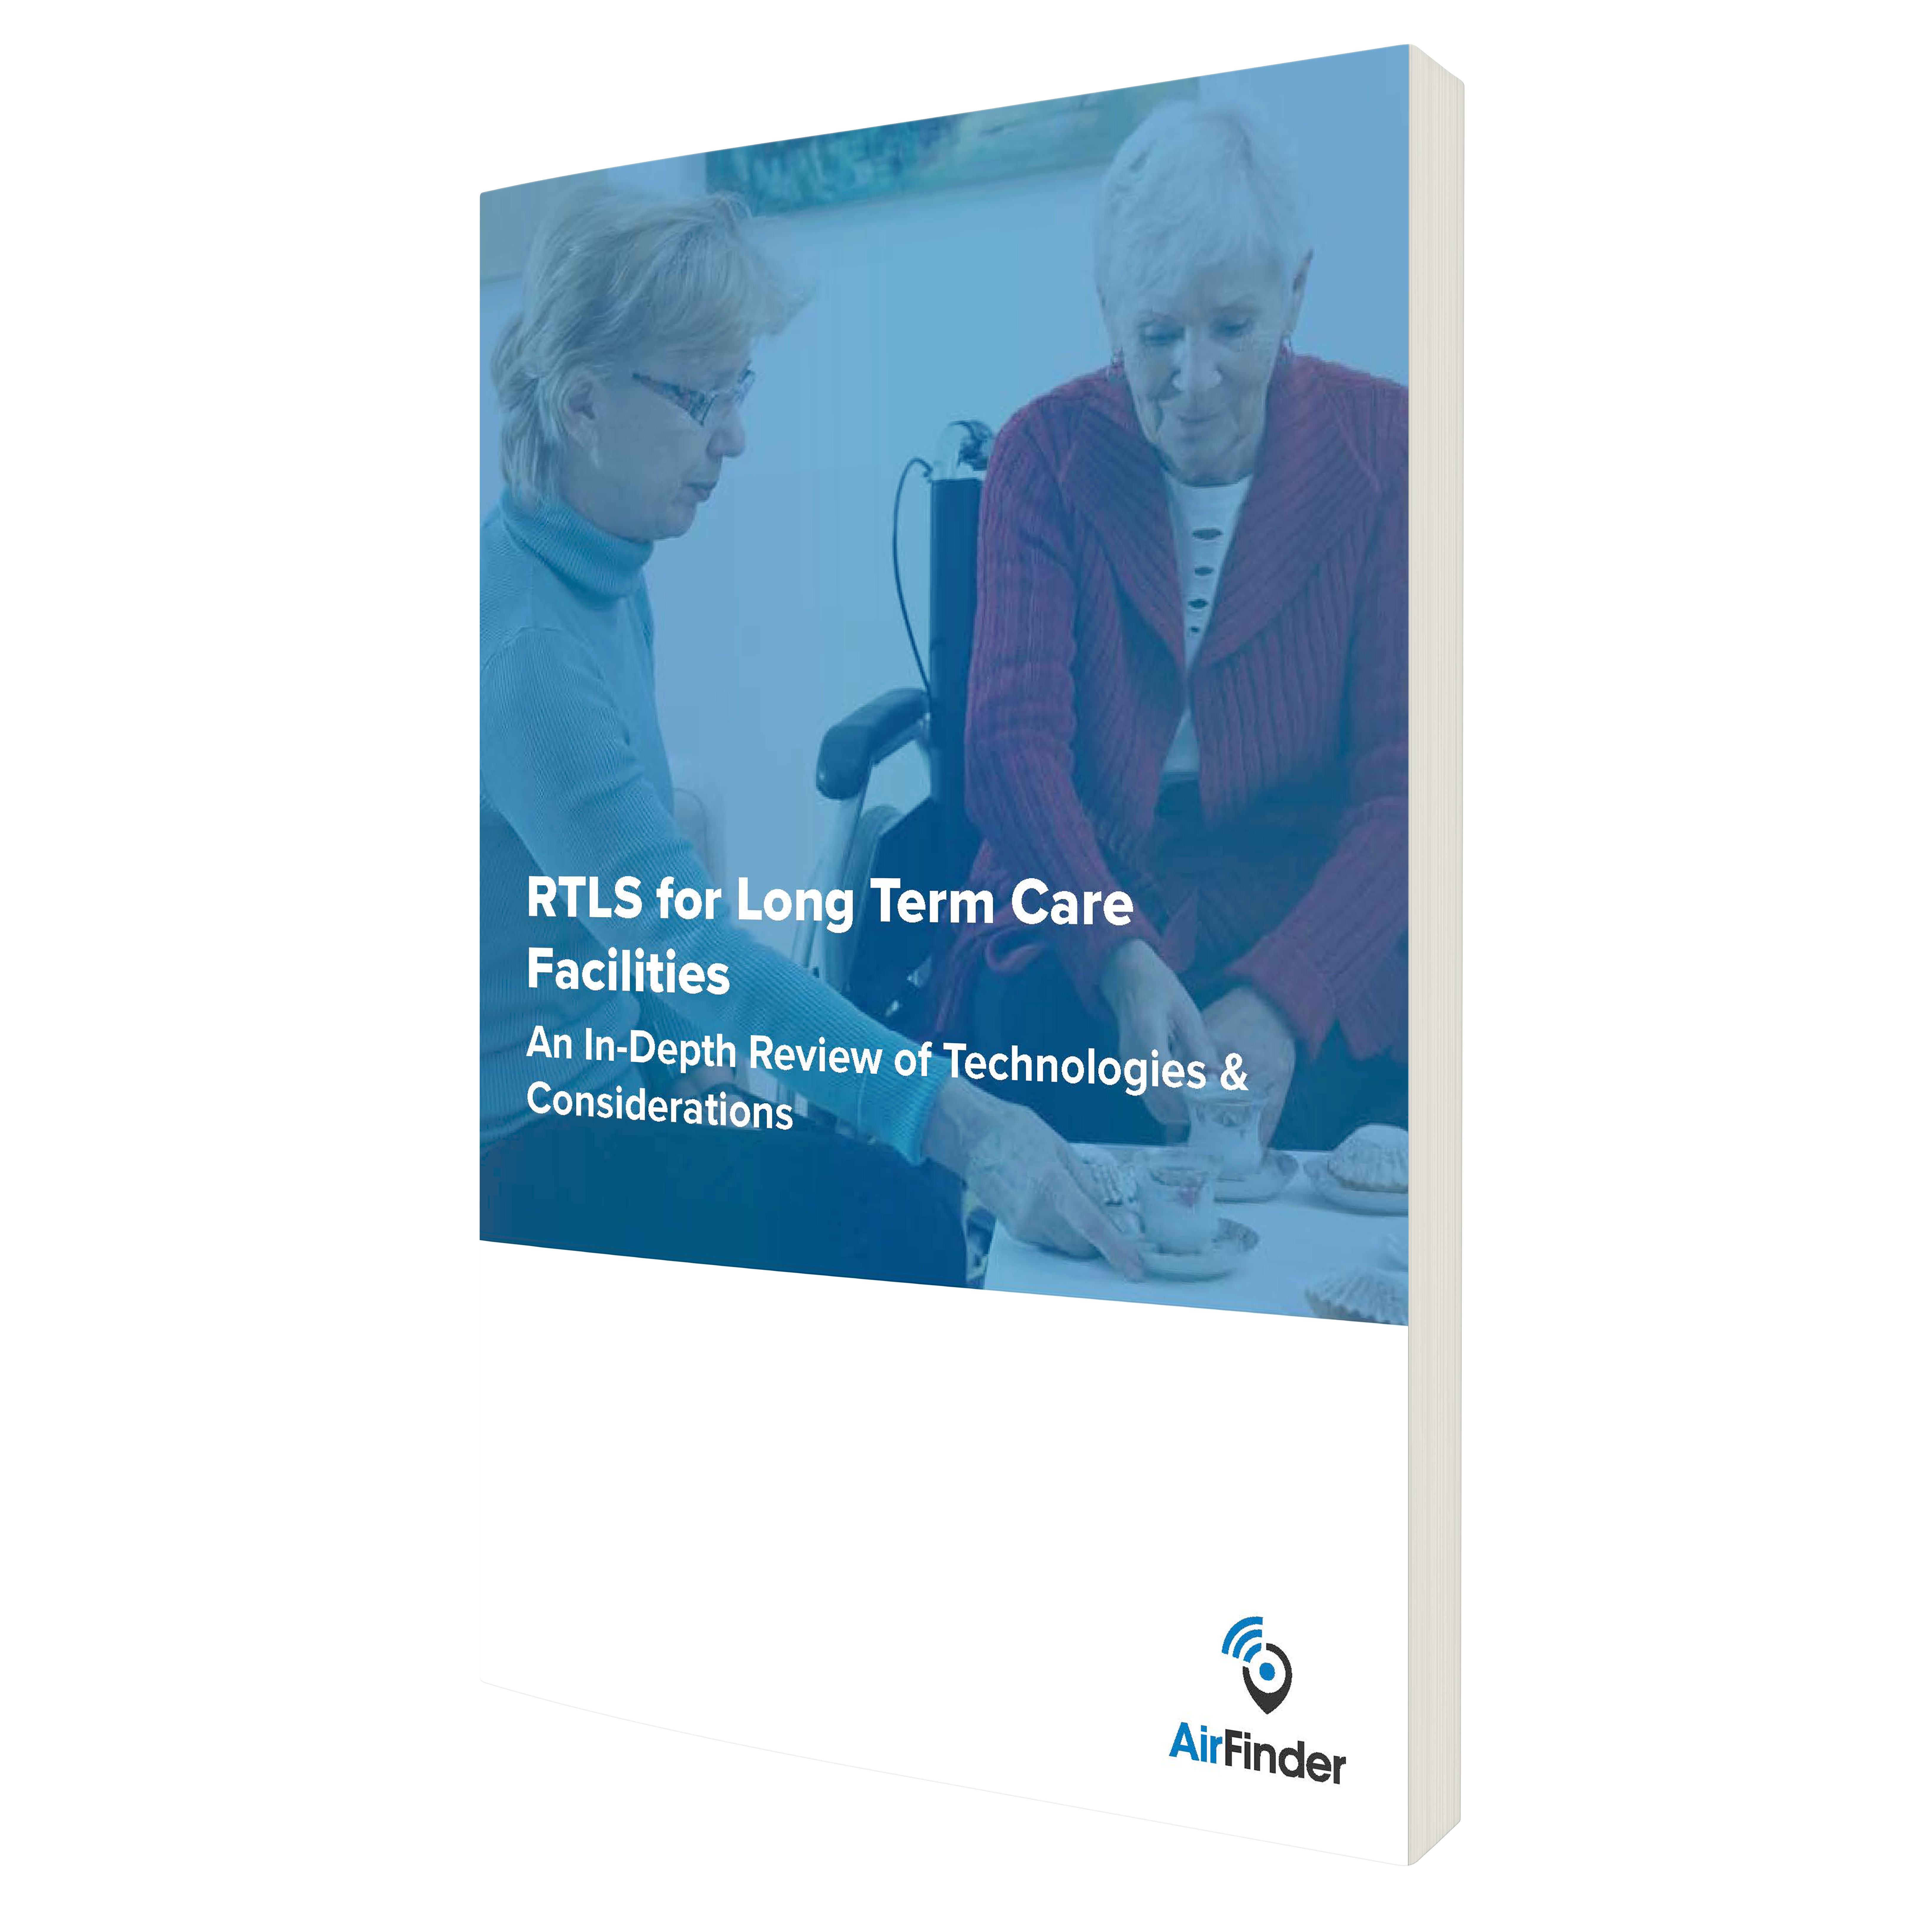 RTLS for Long Term Care Facilities